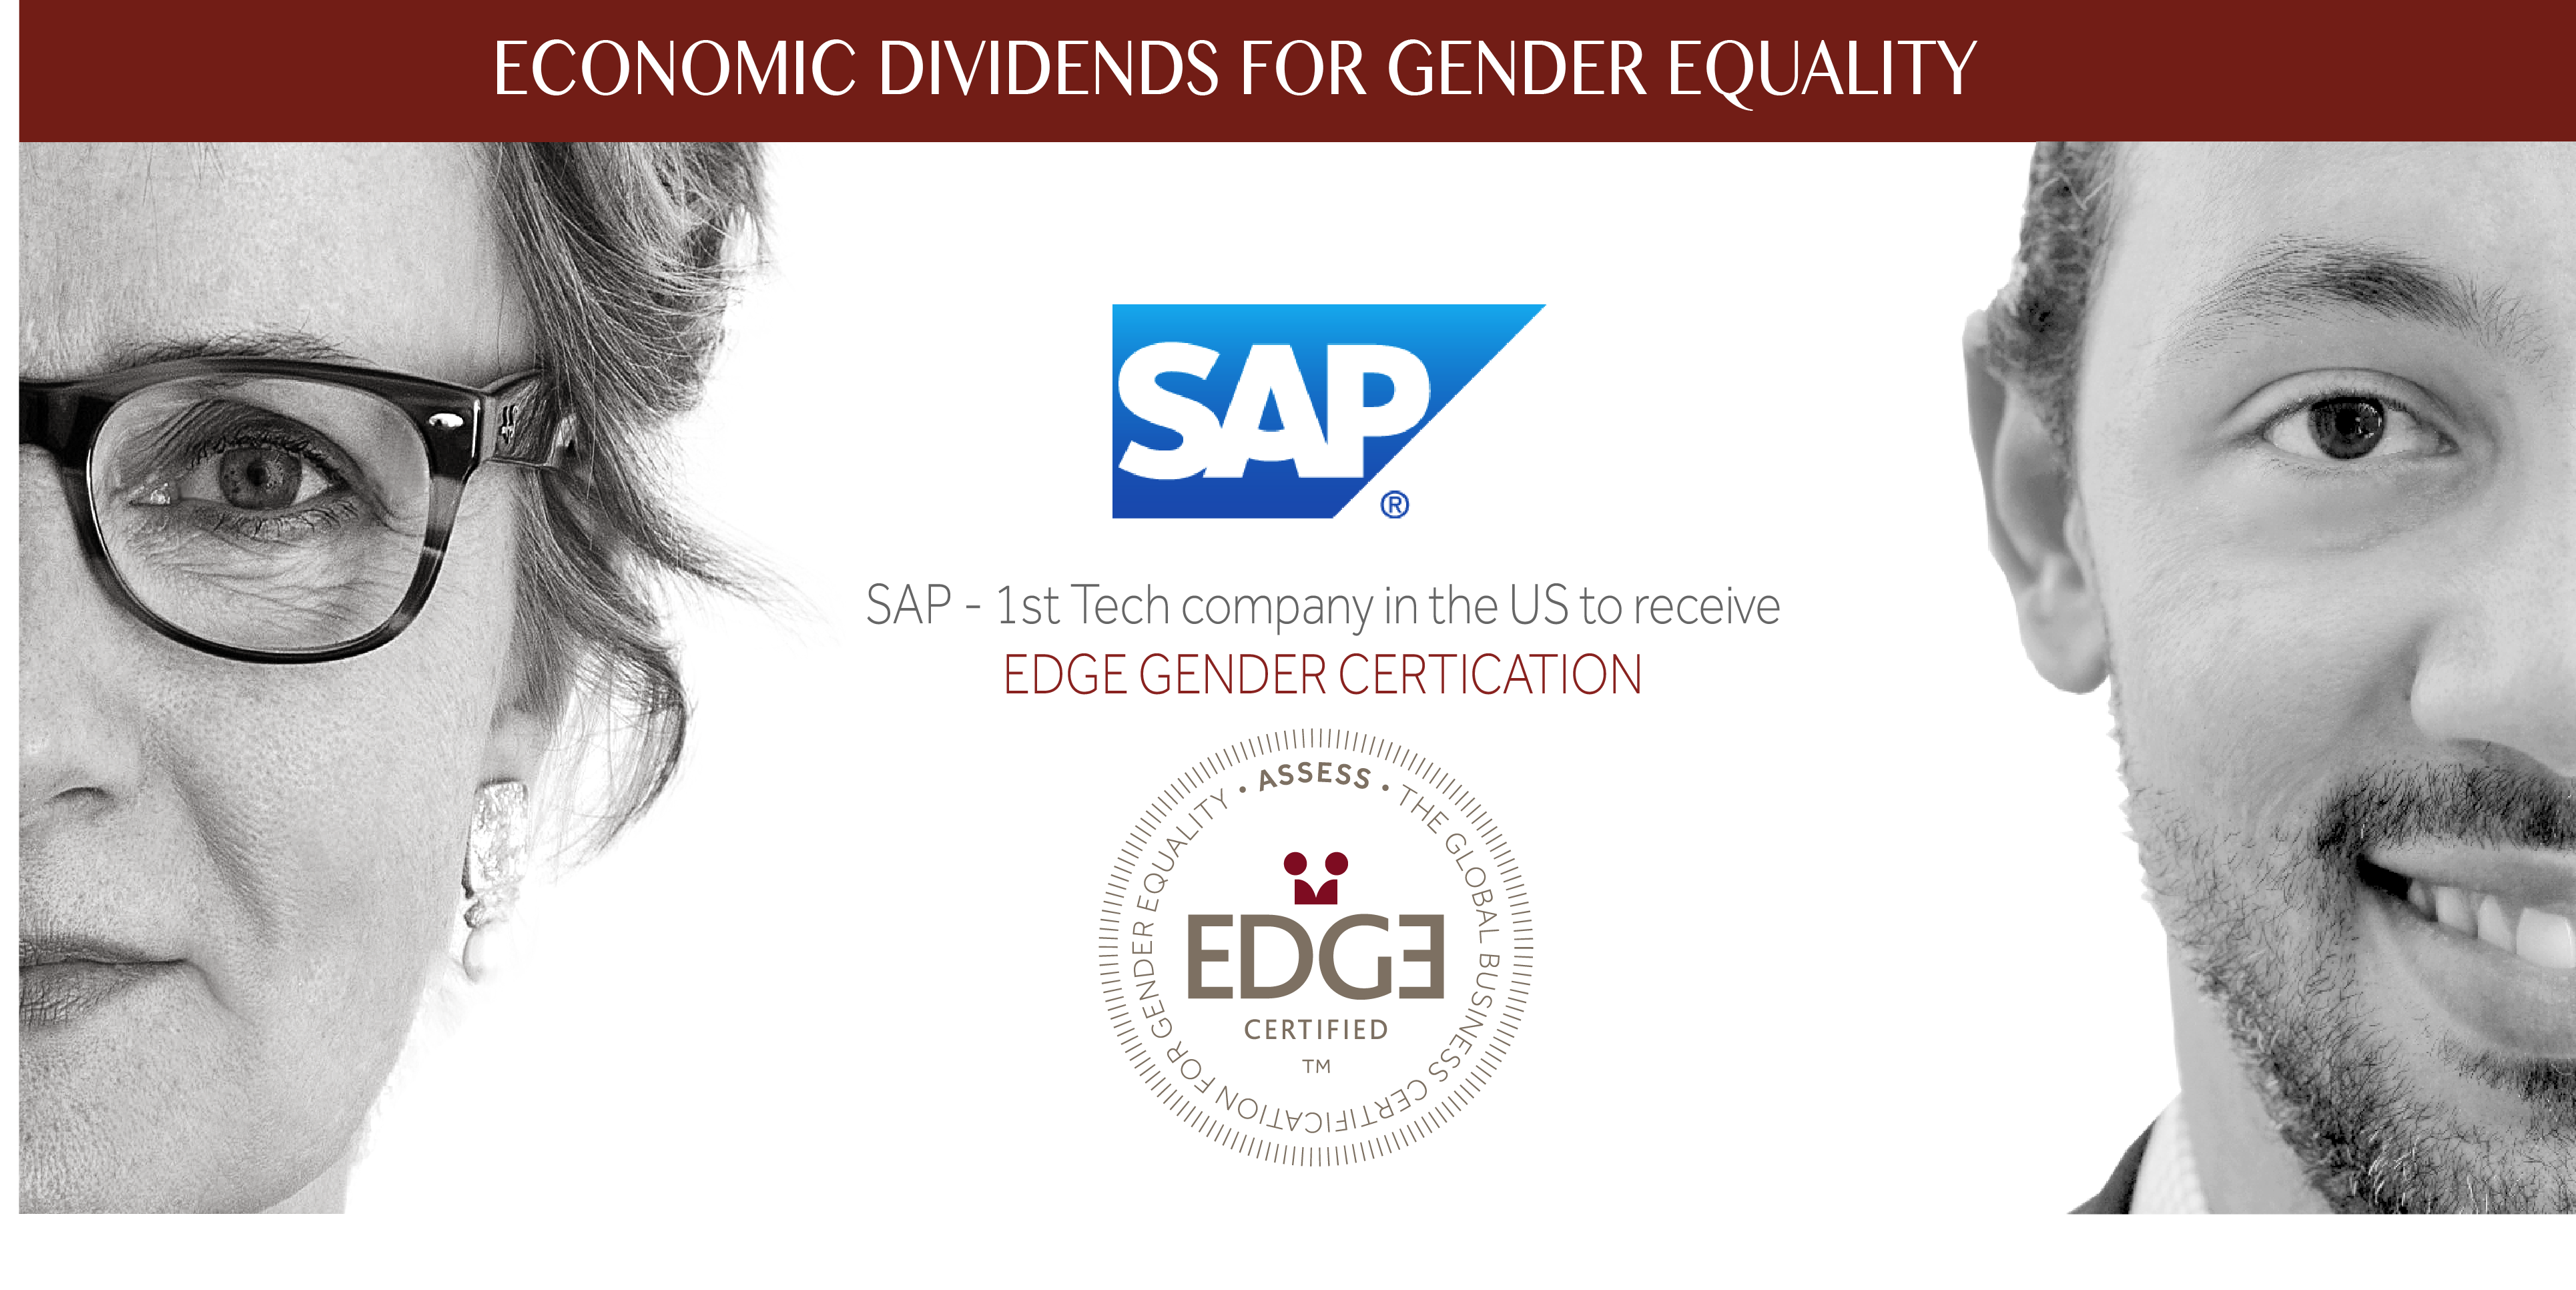 SAP- 1st Tech Company in the U.S. to Receive EDGE Gender Equality ...